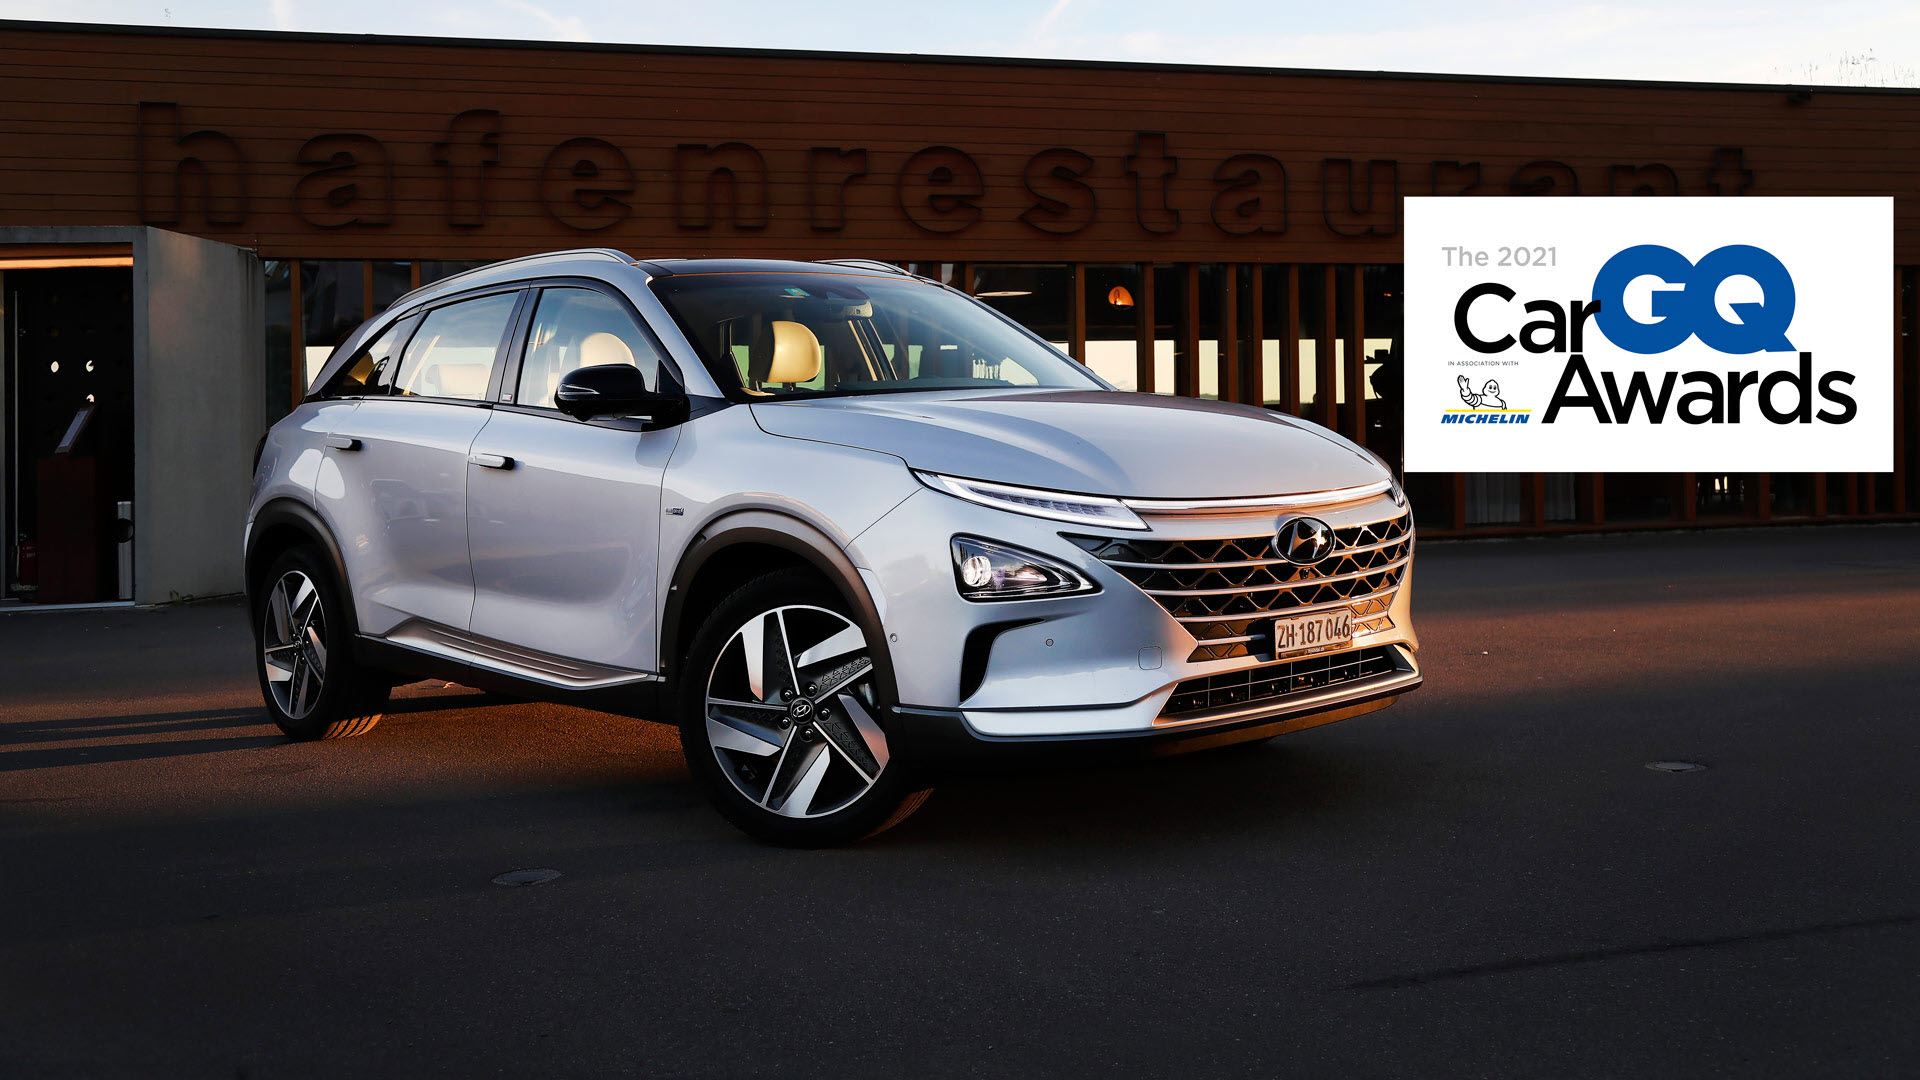 Hyundai Nexo Fuel Cell Electric Vehicle Wins the Title Alternative Energy Car Of The Year At The GQ Car Awards 2021 Main 1